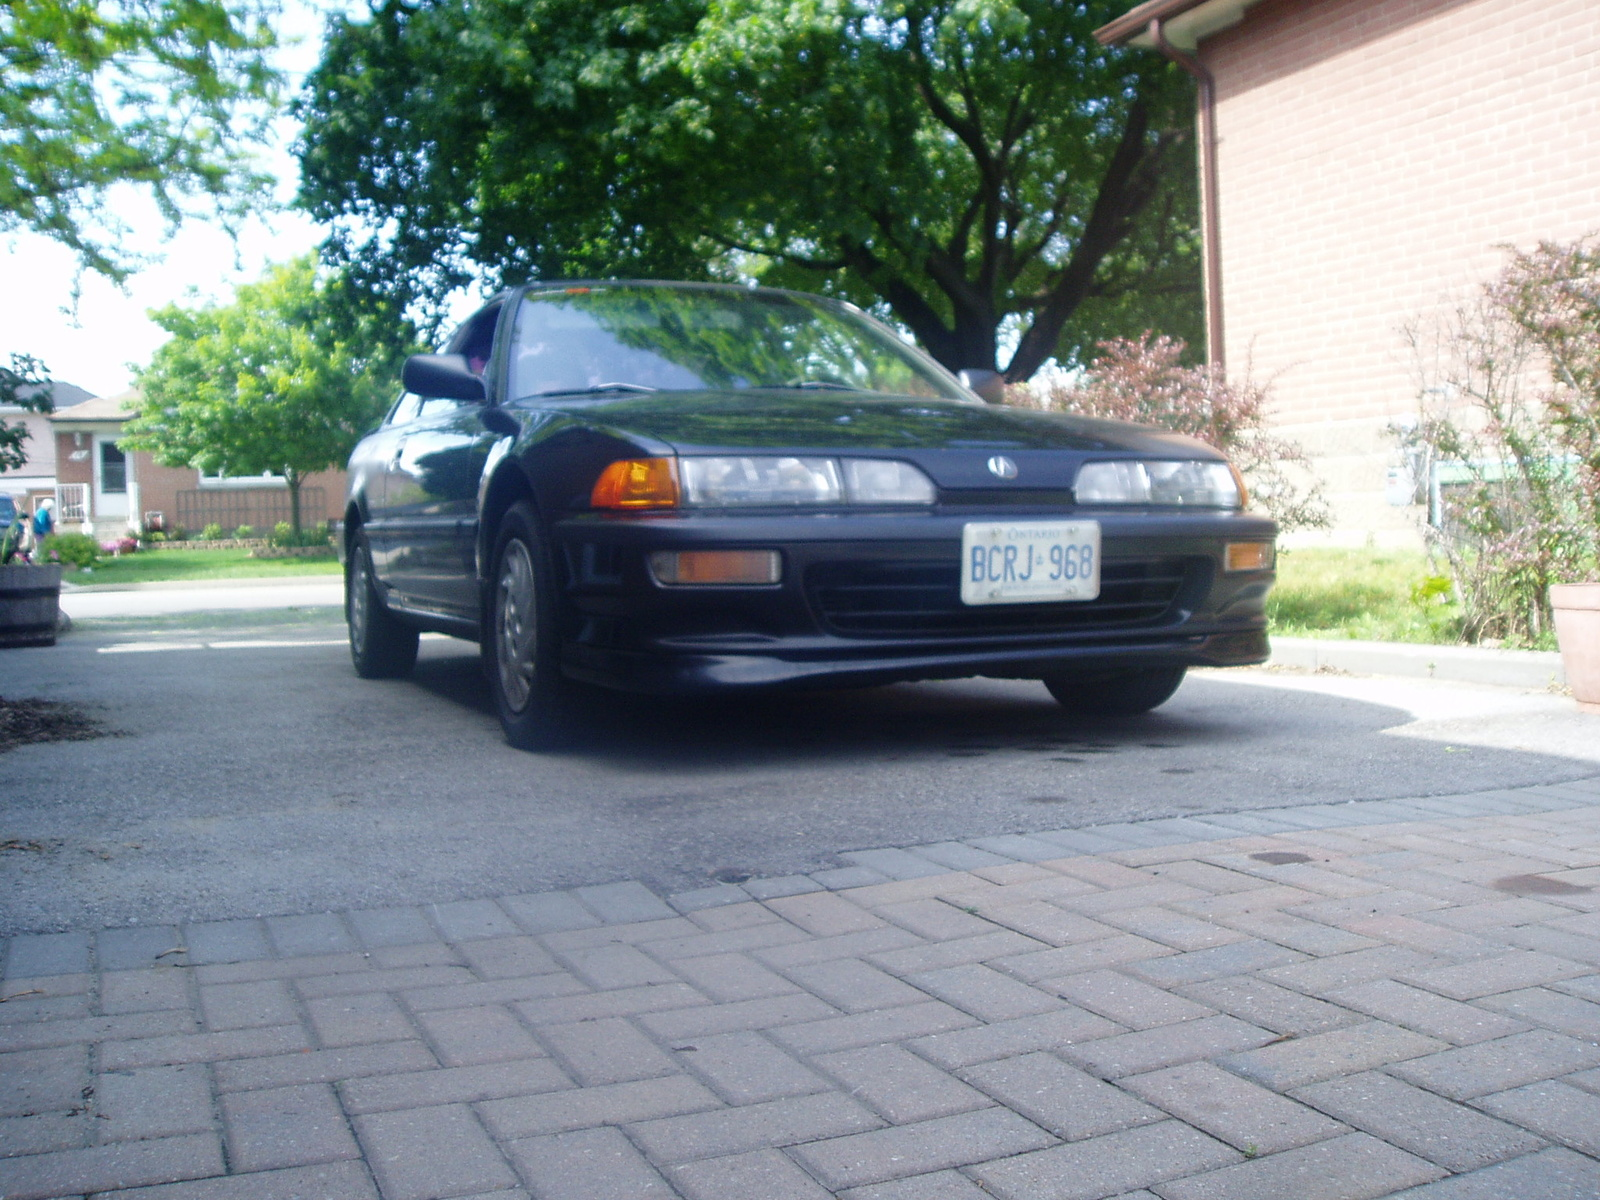 1993 Acura Integra 2 Dr RS Hatchback picture, exterior